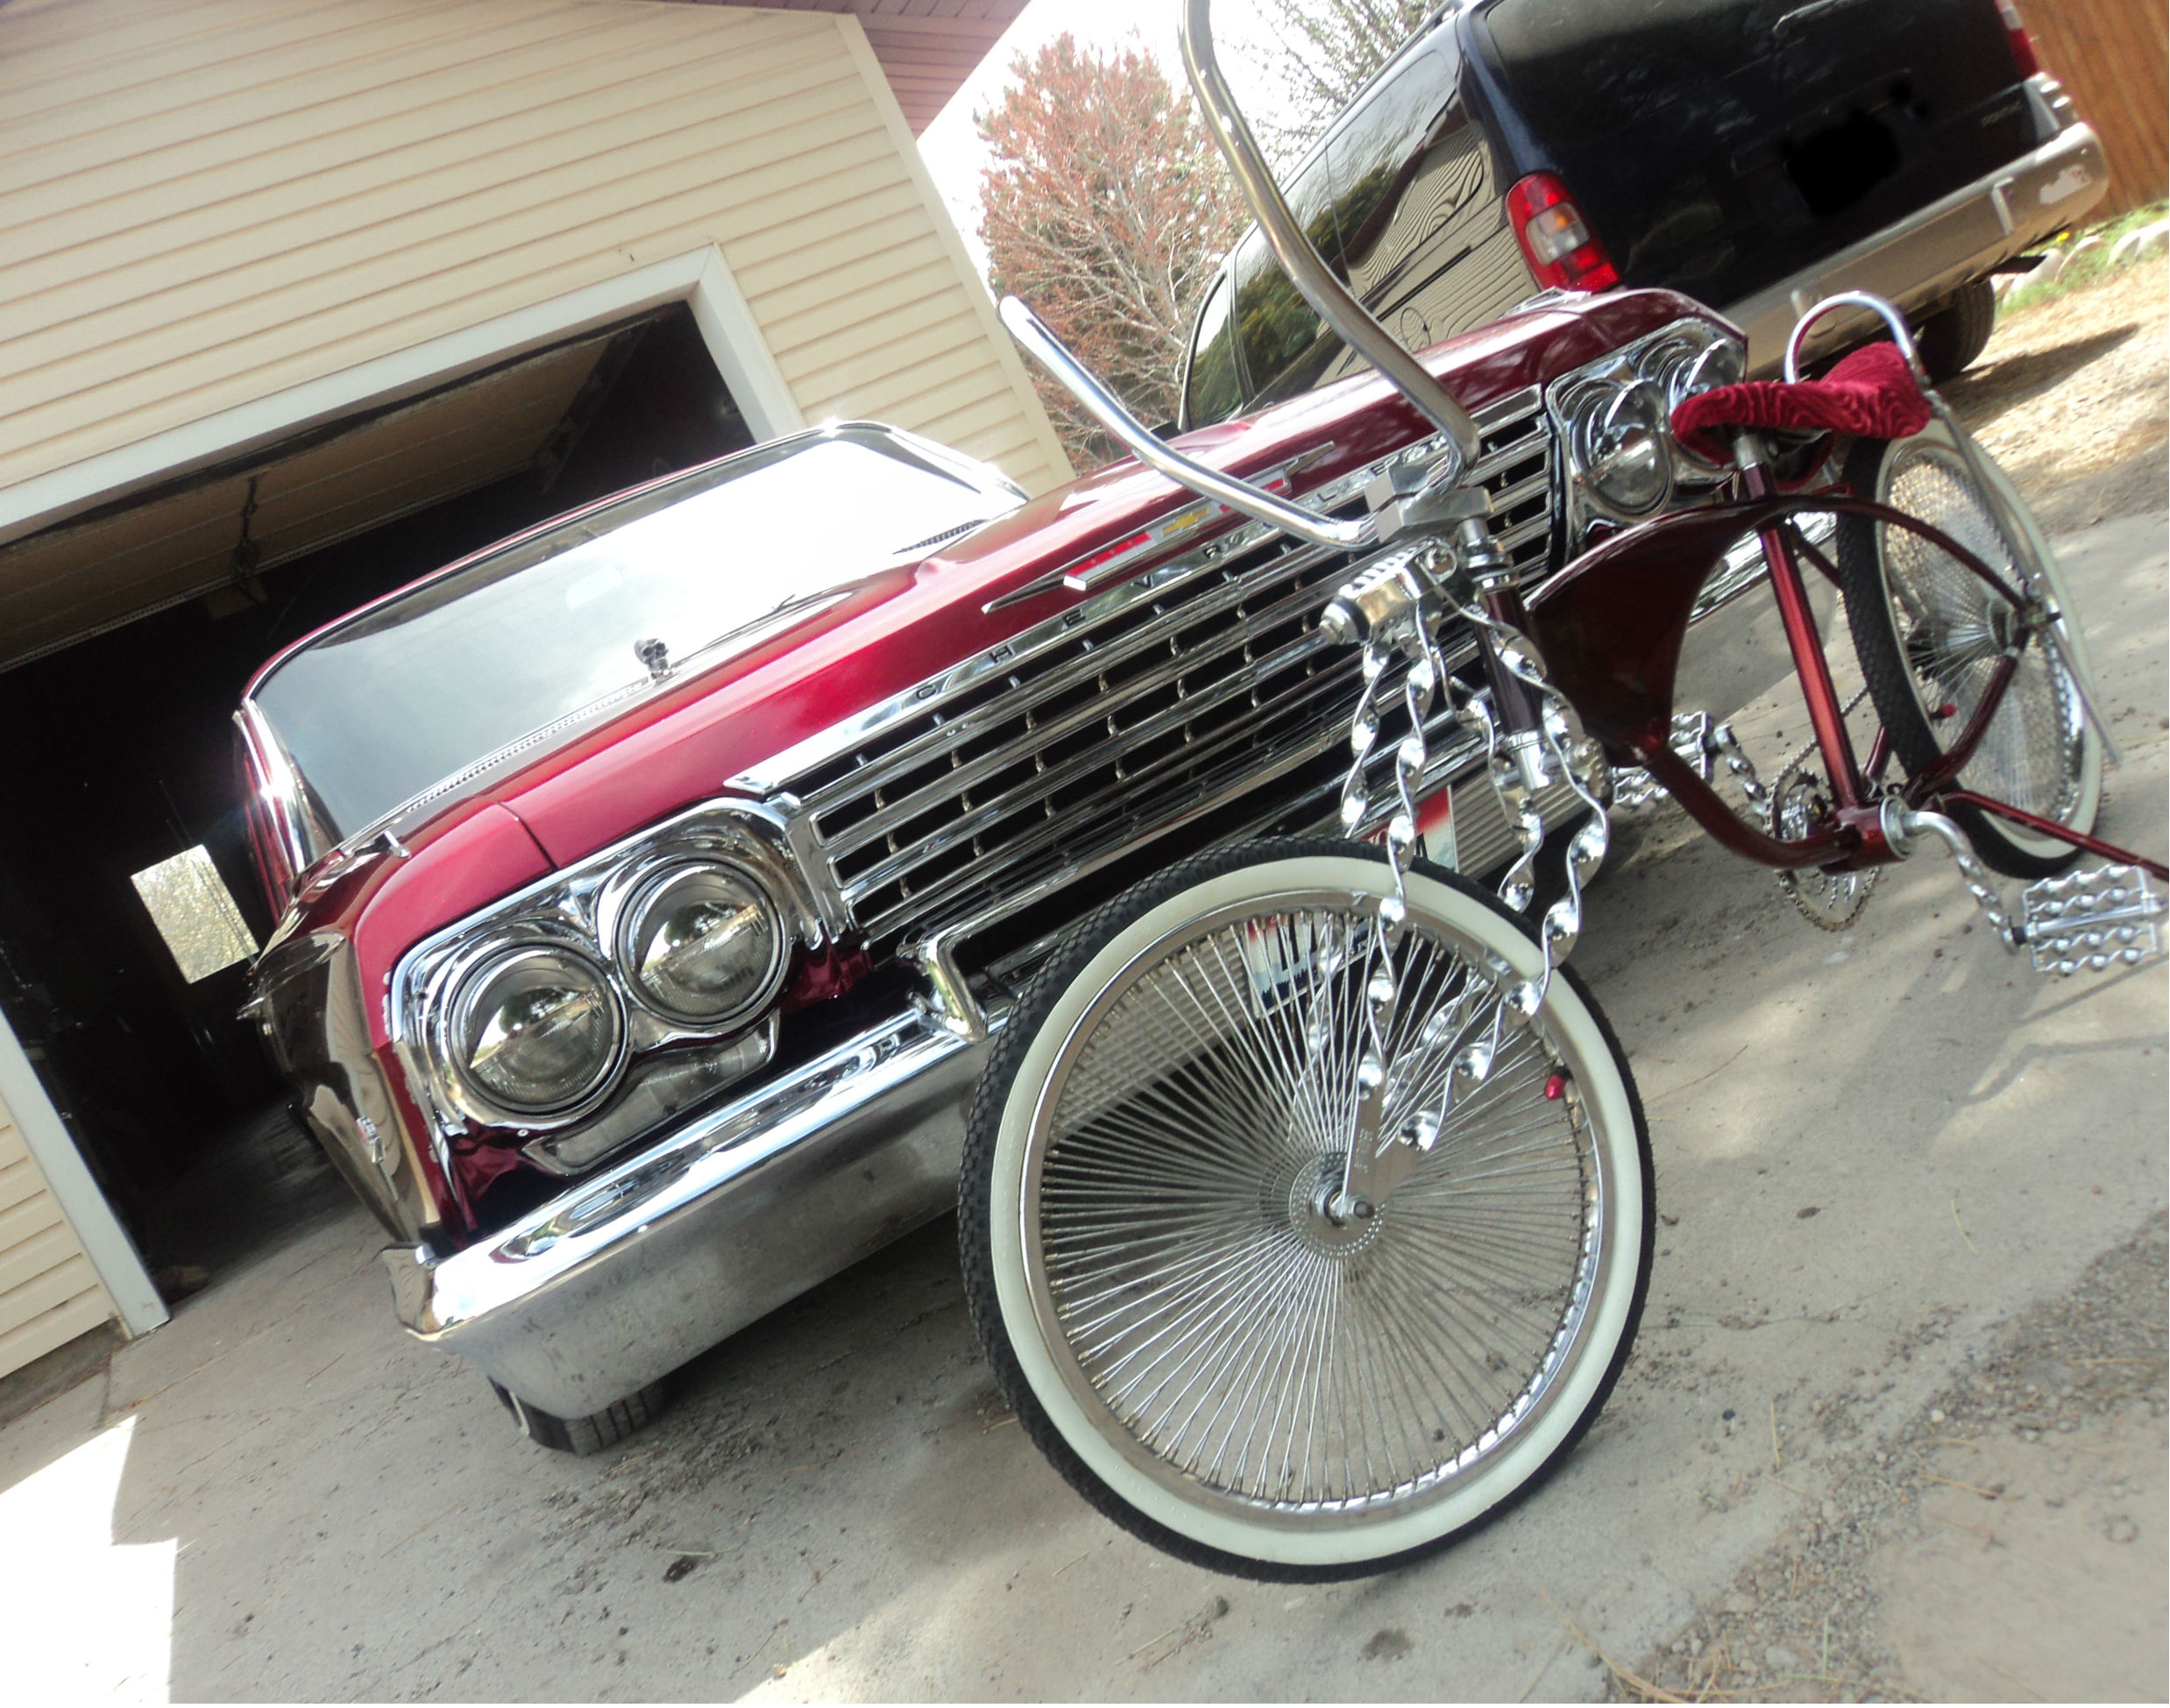 Bikes On Craigslist Las Vegas Lowrider and bike jpg